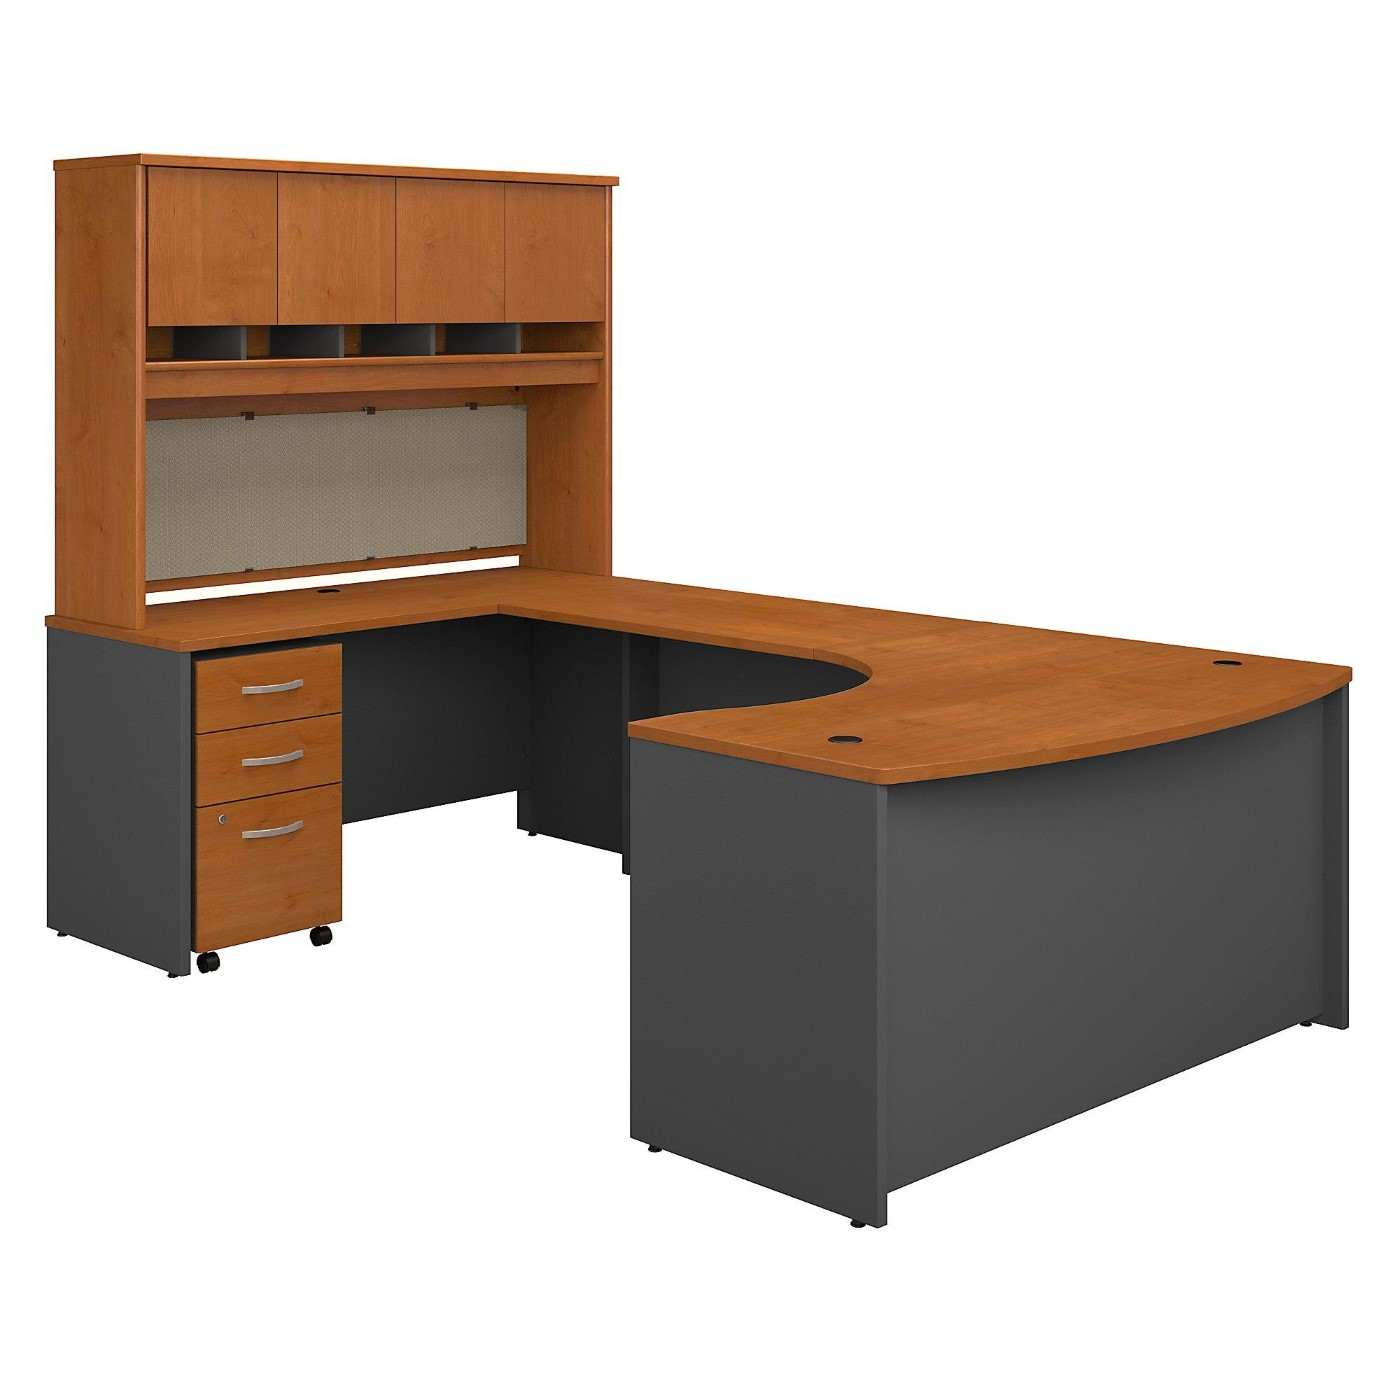 BUSH BUSINESS FURNITURE SERIES C 60W RIGHT HANDED BOW FRONT U SHAPED DESK WITH HUTCH AND STORAGE. FREE SHIPPING  VIDEO BELOW.  SALE DEDUCT 10% MORE ENTER '10percent' IN COUPON CODE BOX WHILE CHECKING OUT.